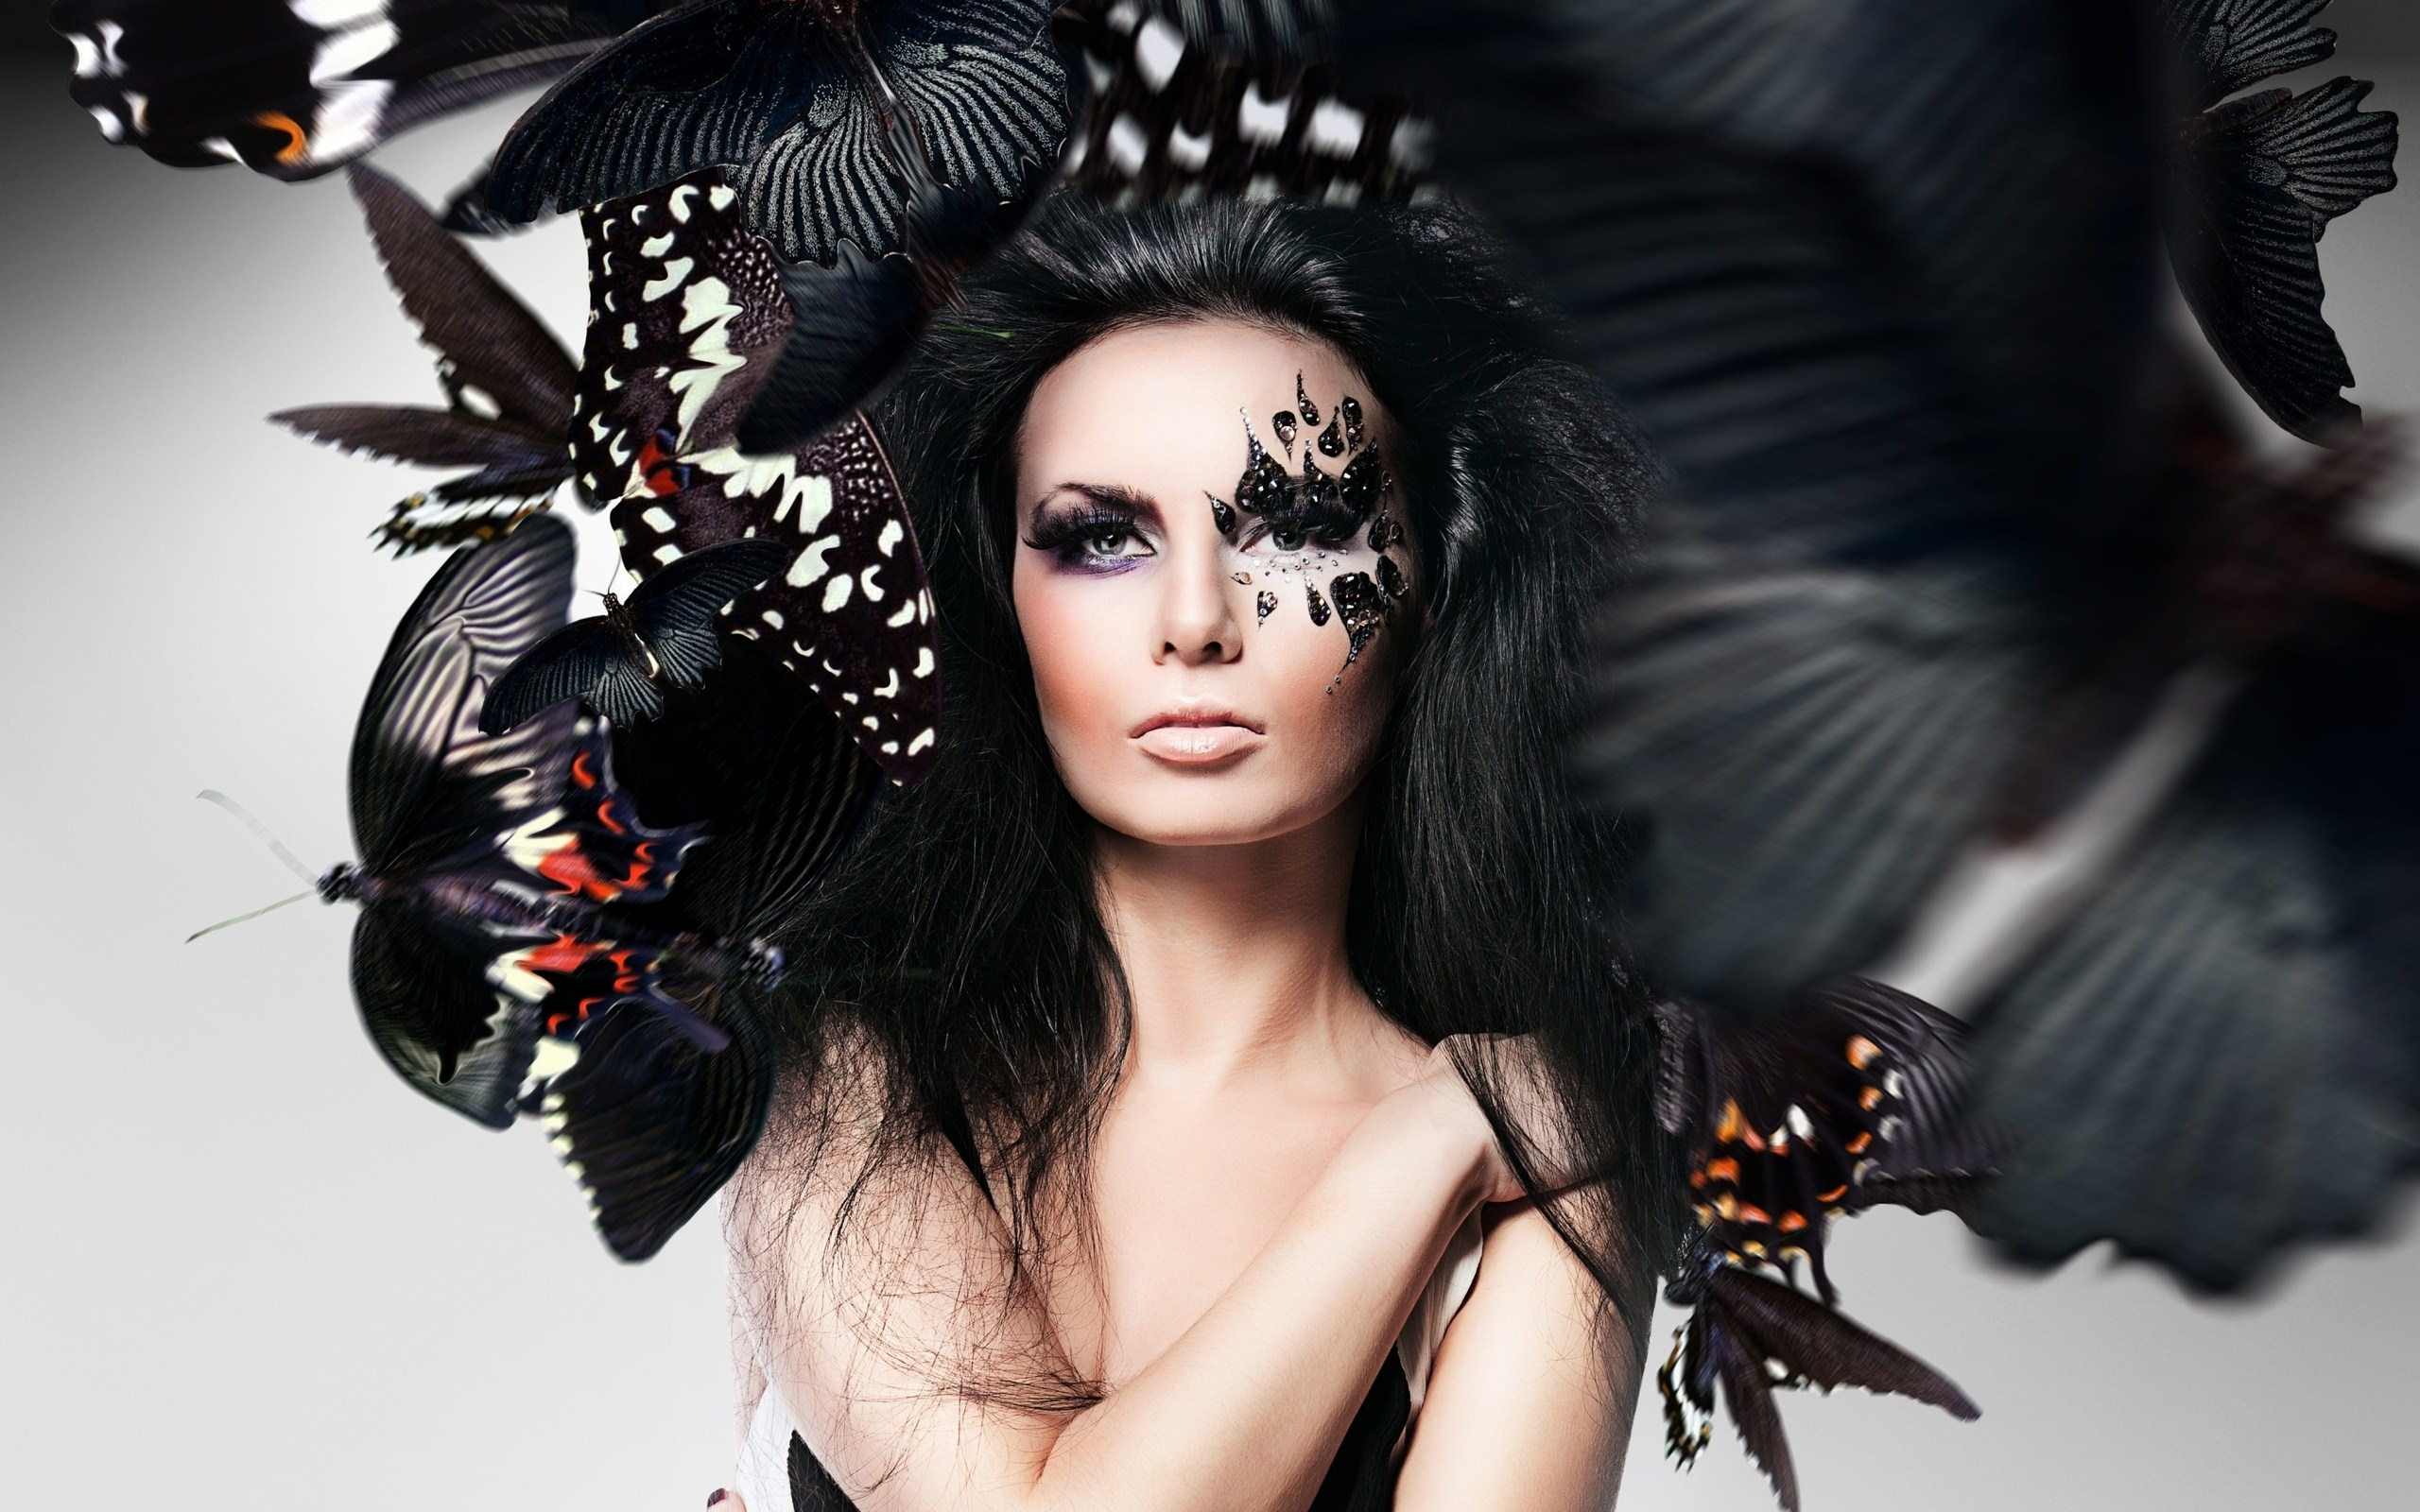 Butterflies Art Brunette Woman HD Wallpaper